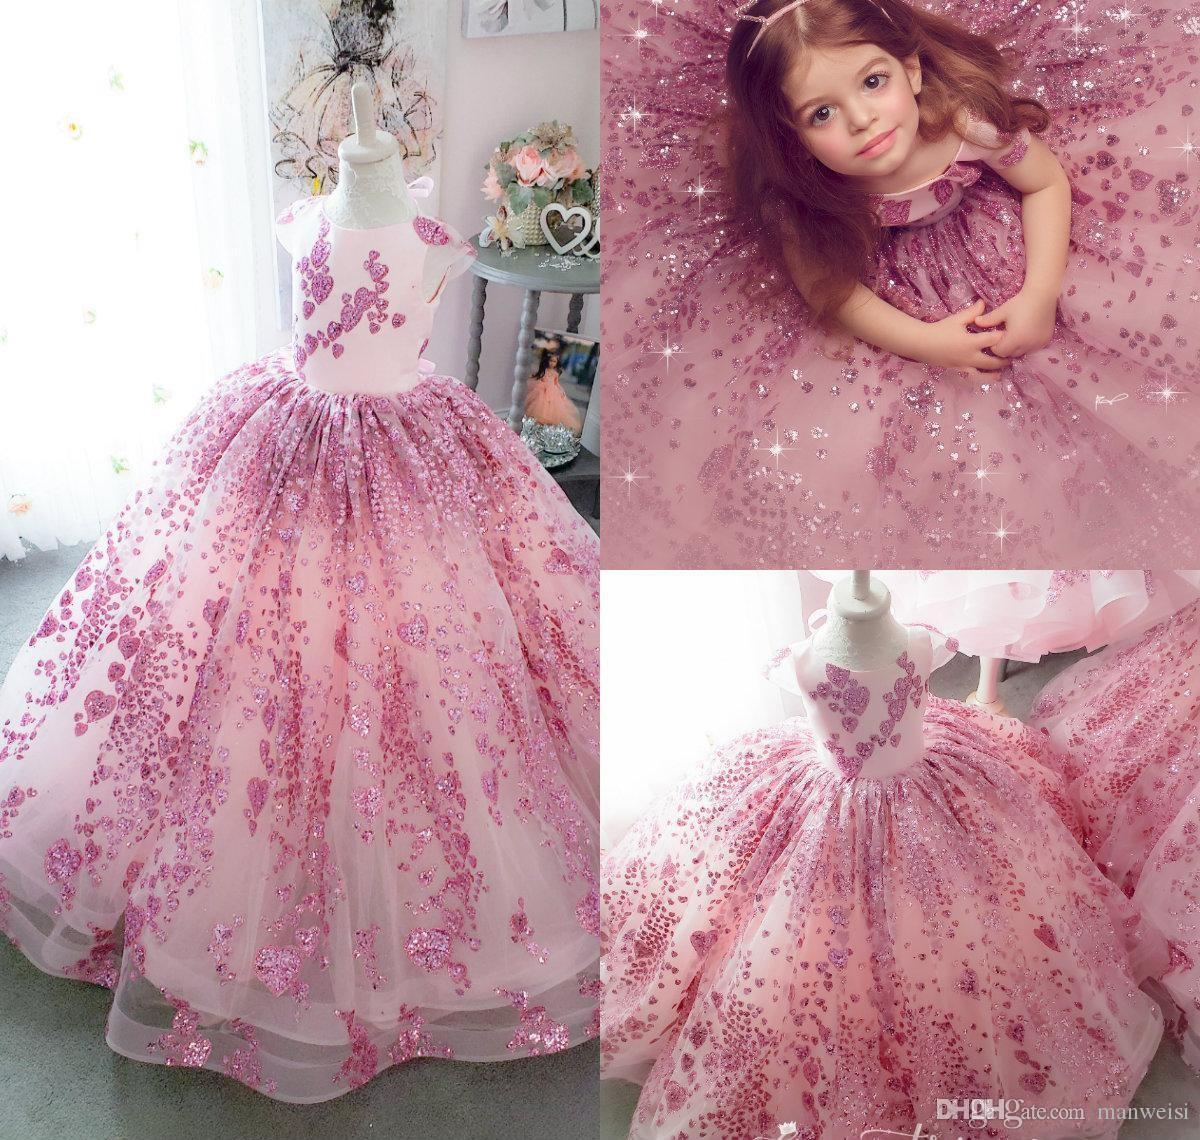 Bling Bling Little Girls Pageant Dresses Lace Sequins Cap Sleeve Ball Gown Flower Girl Dress For Wedding Kids Formal Birthday Party Gowns